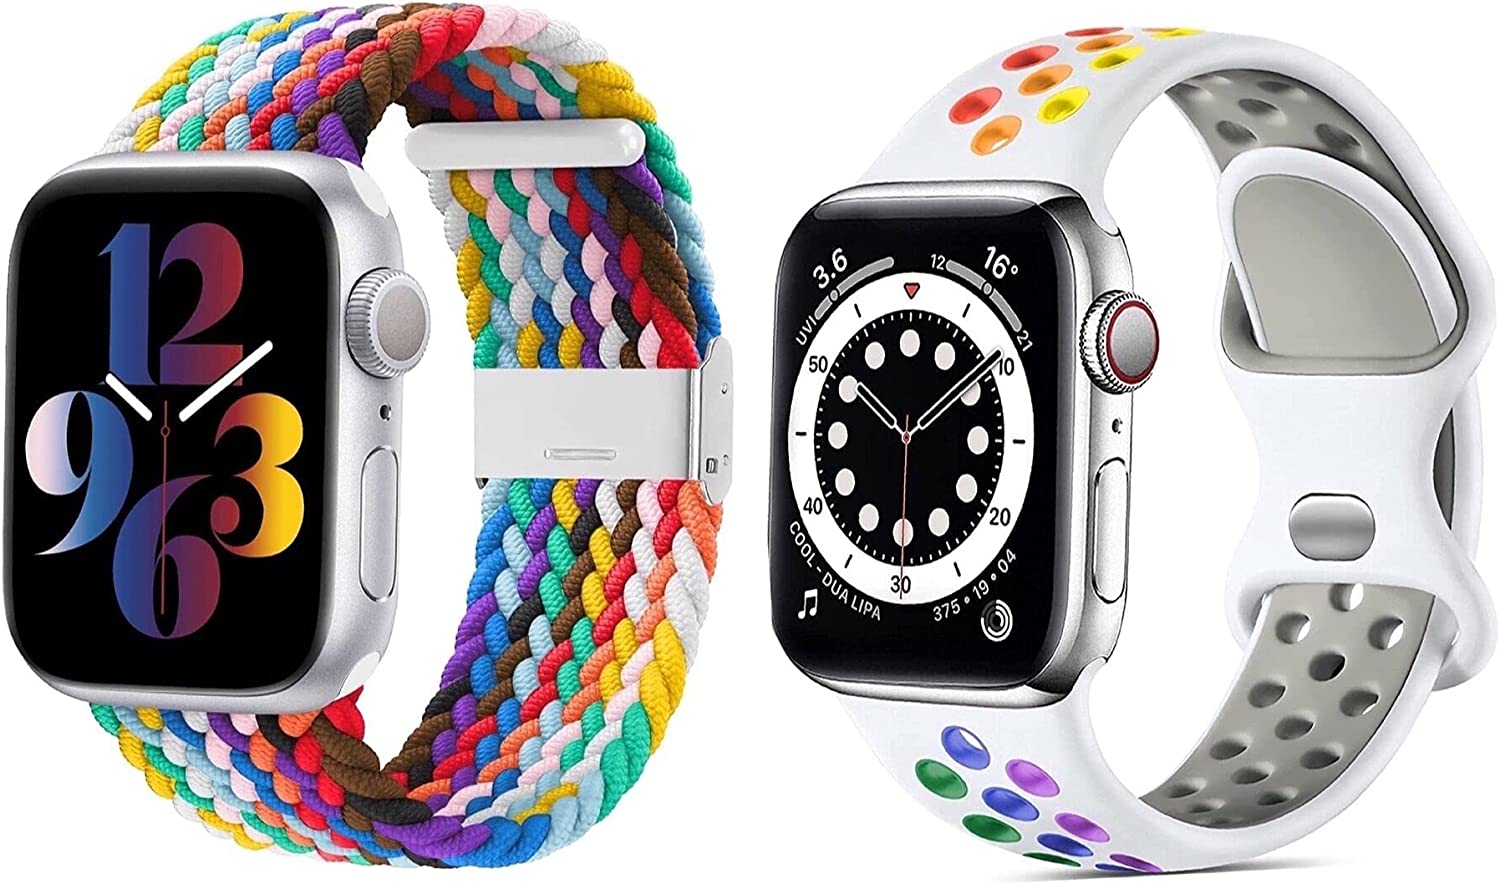 BUBEHYMY Compatible Apple Watch Band 38mm 40mm 42mm 44mm,Soft Silicone Replacement Strap + Adjustable Braided Single loop Stretchable Elastic Sports Wristband,For iWatch Series 6 5 4 3 2 1 SE Men's Ladies